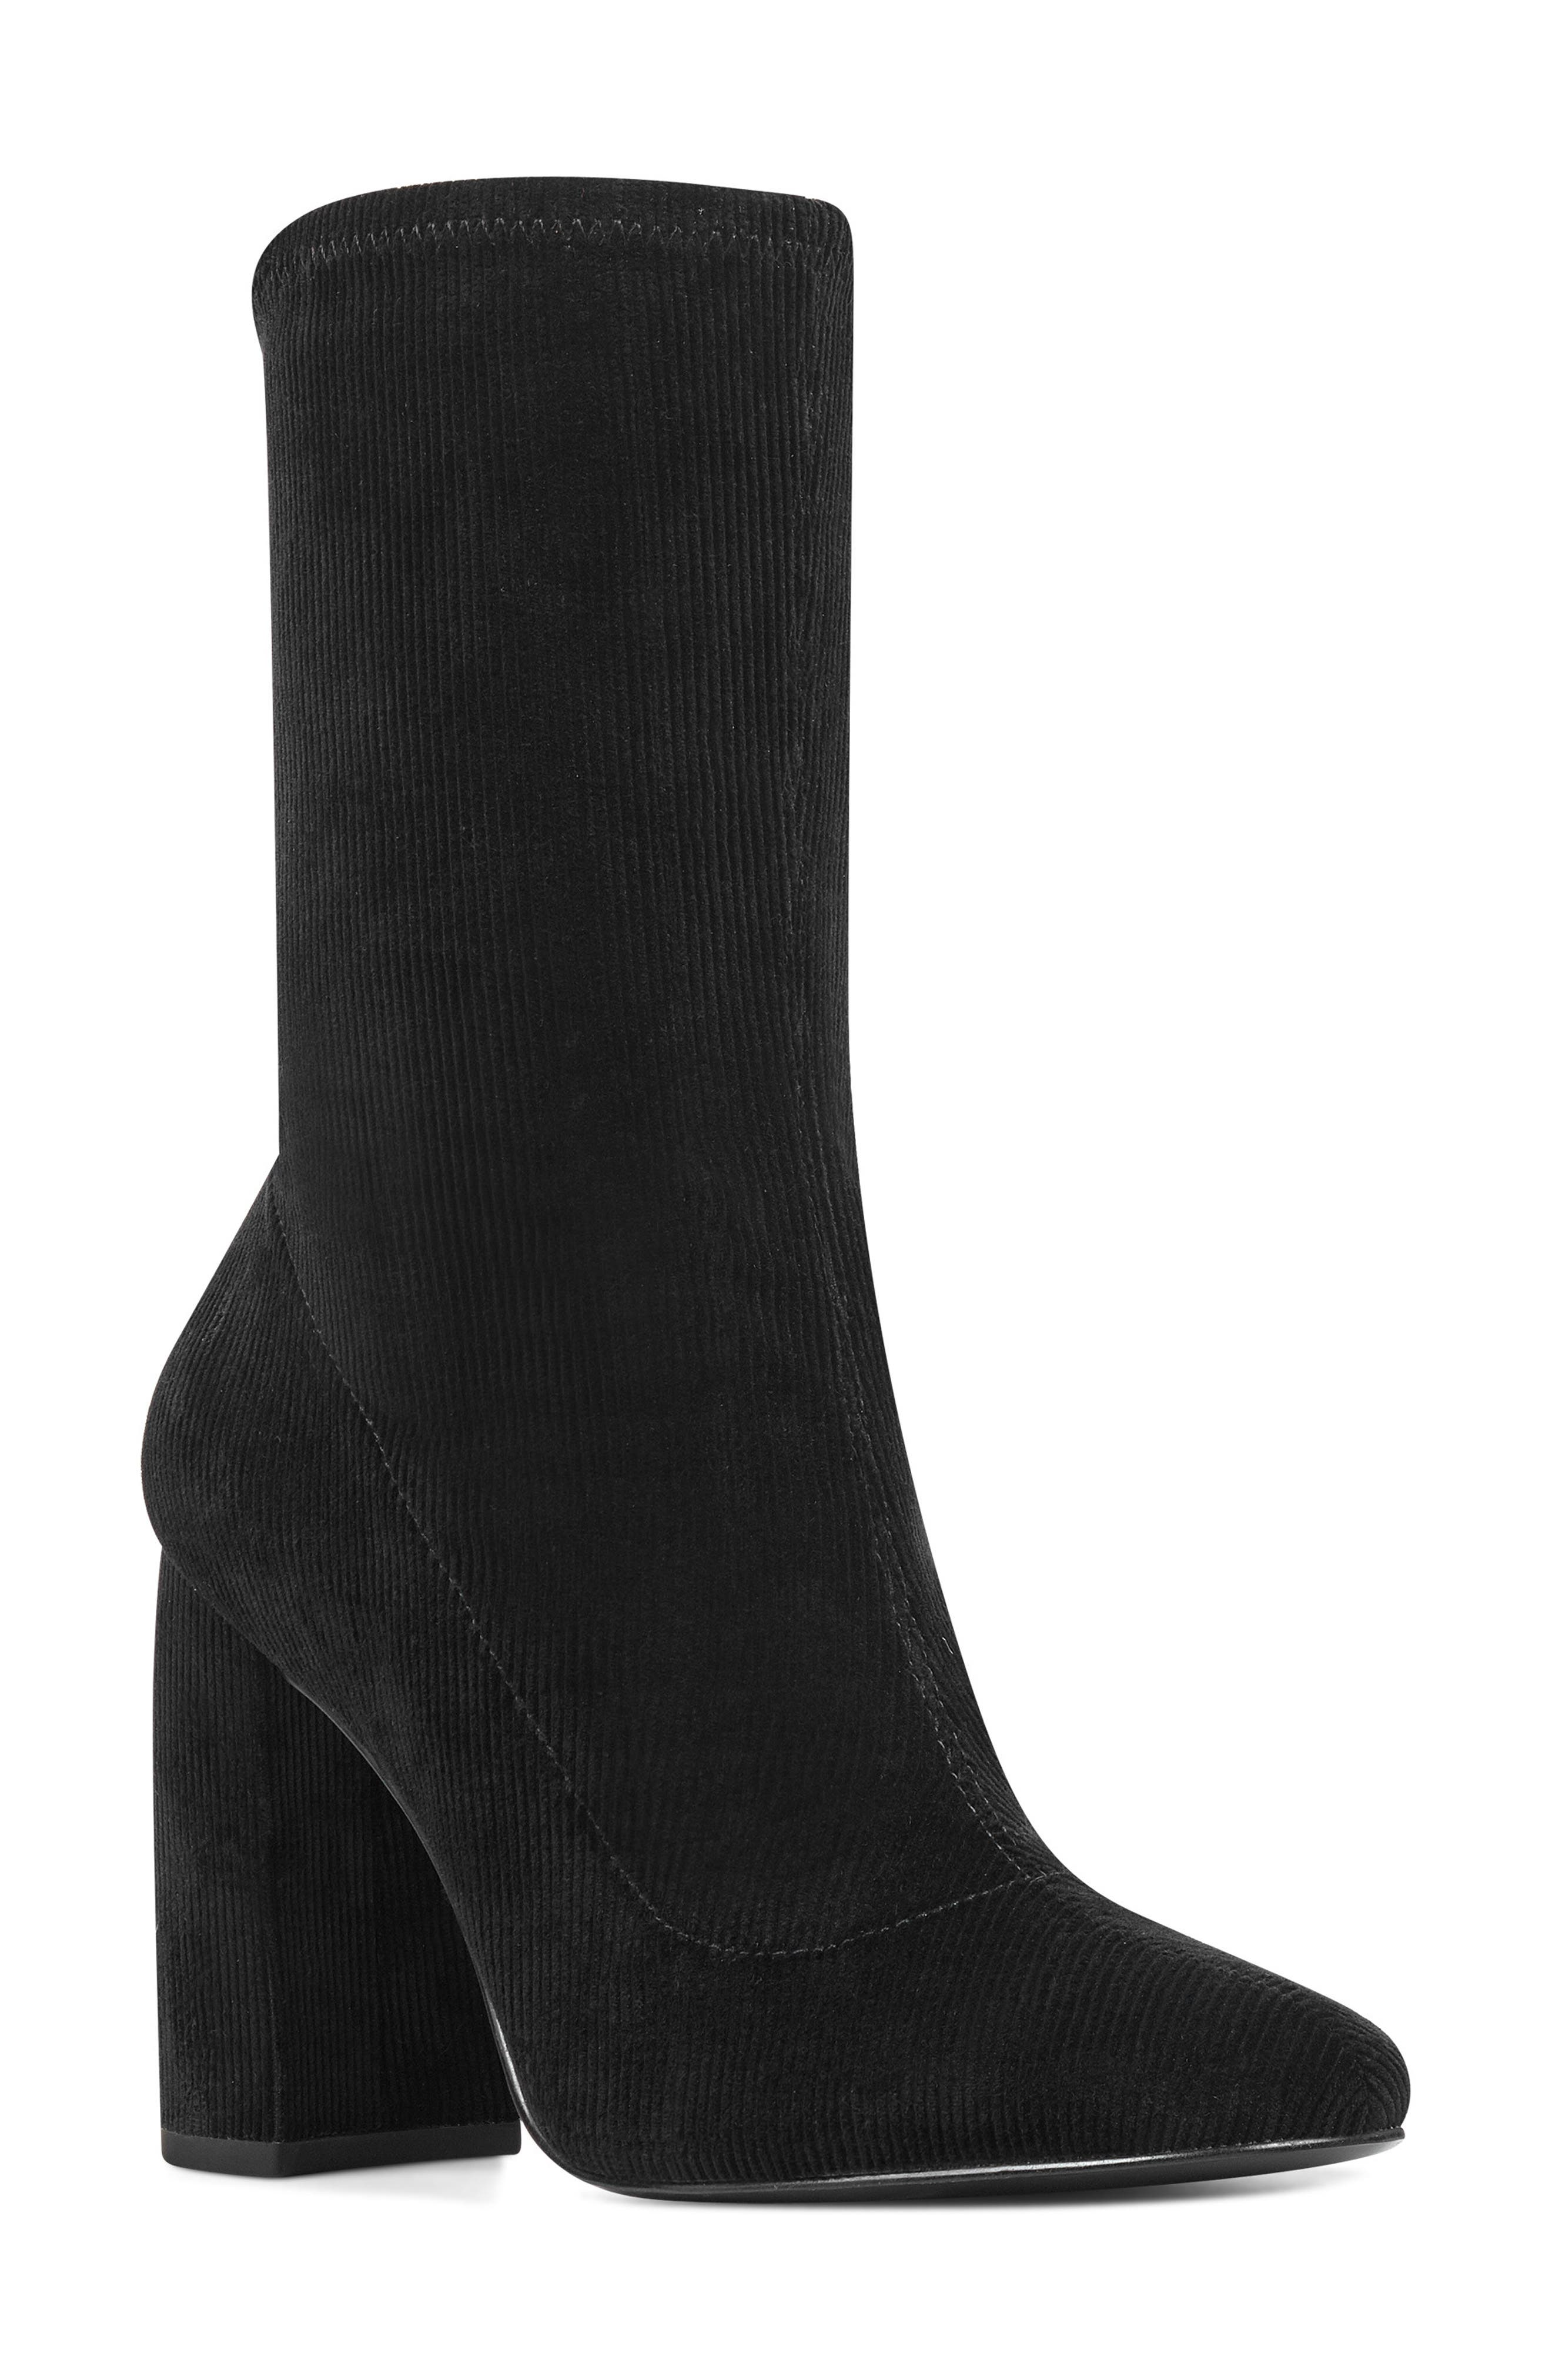 Nine West Cal Stretch Corduroy Bootie, Black